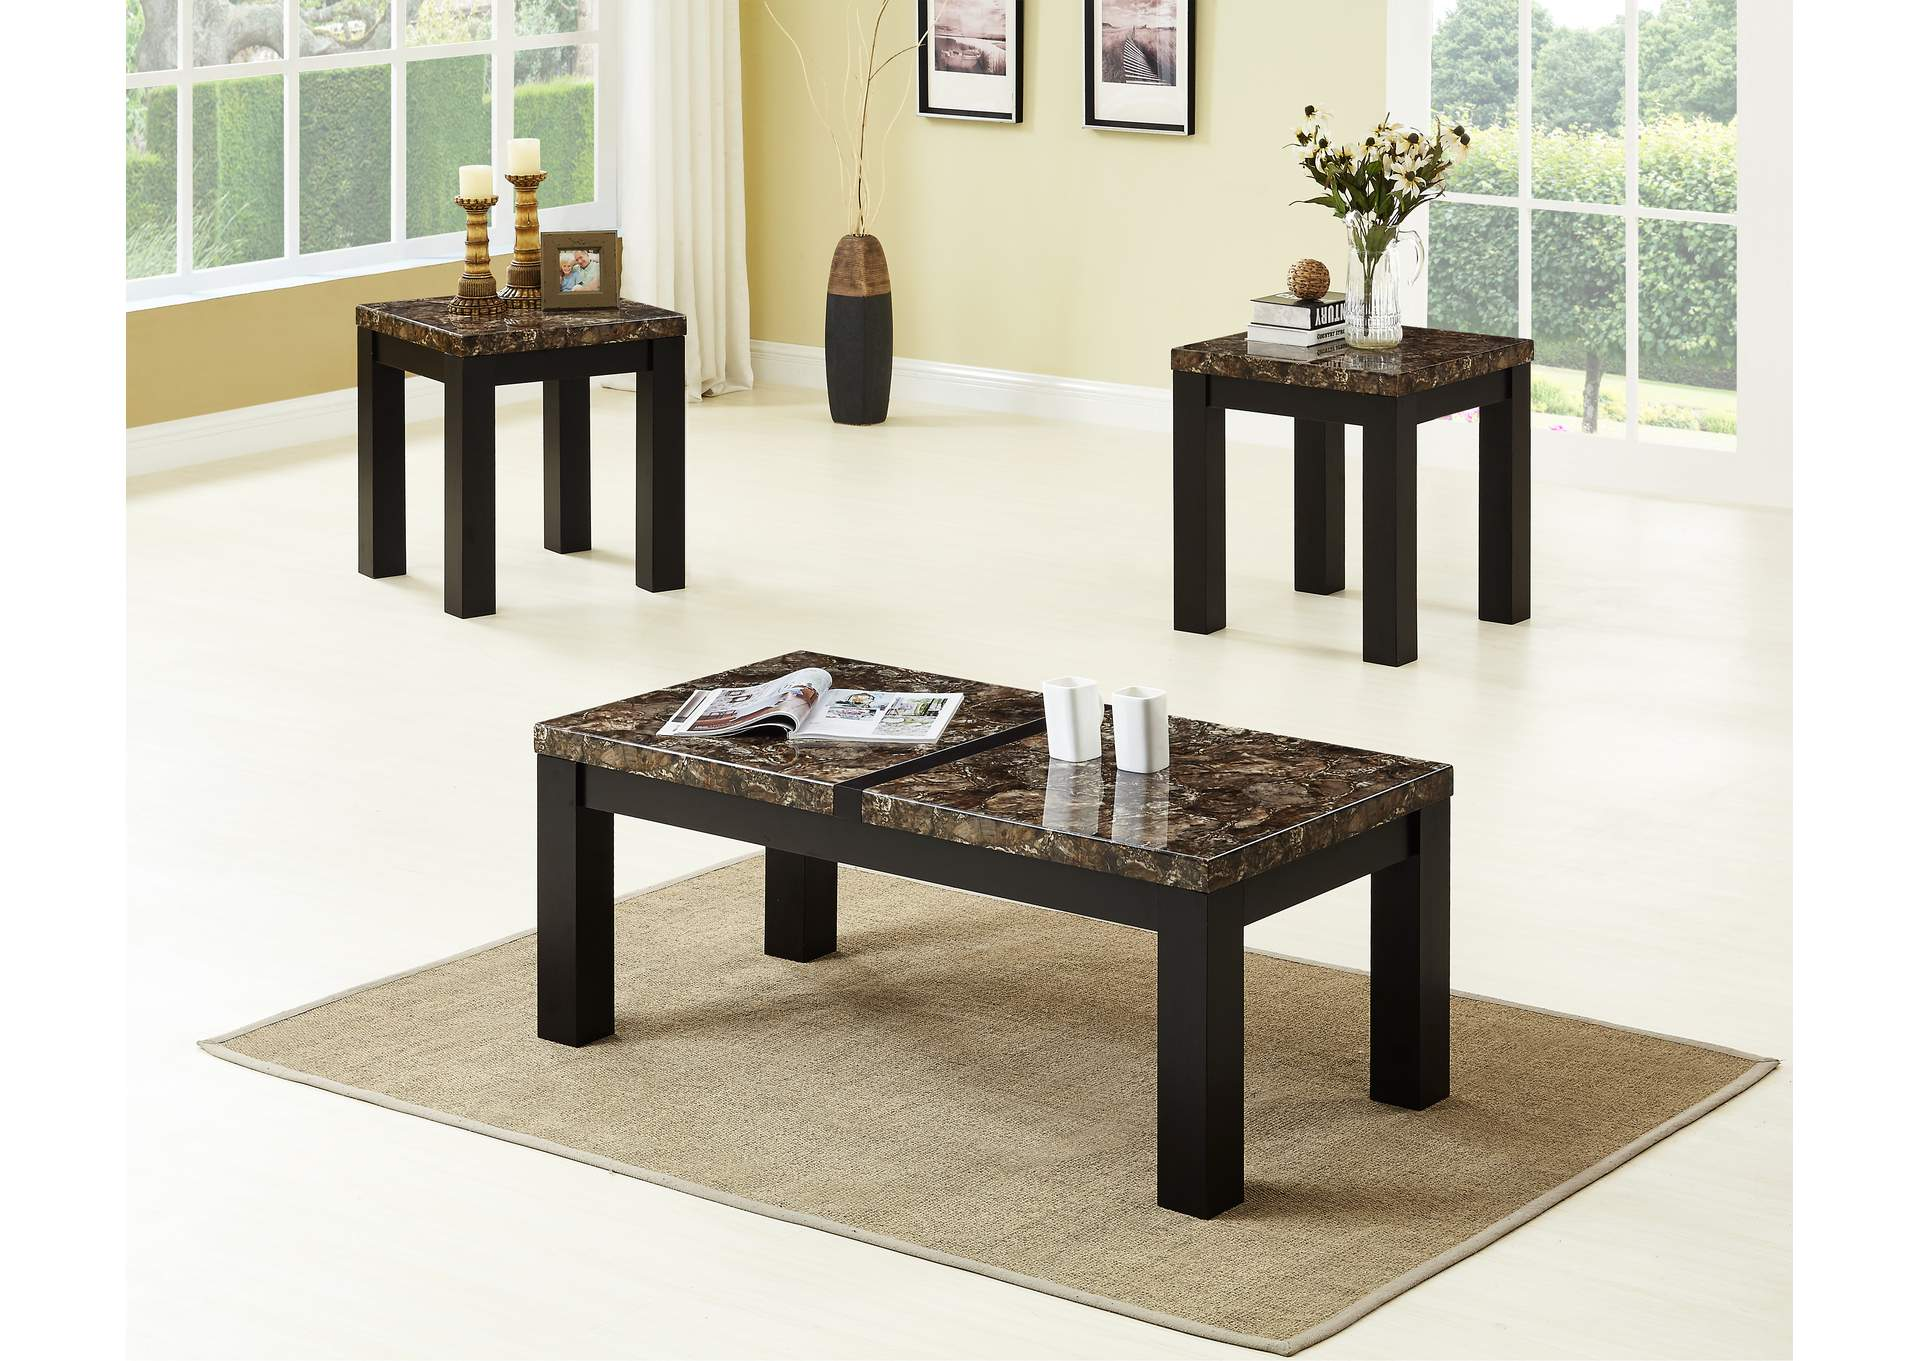 Brown 3 Piece Marble Top Coffee & End Table Set,Global Trading